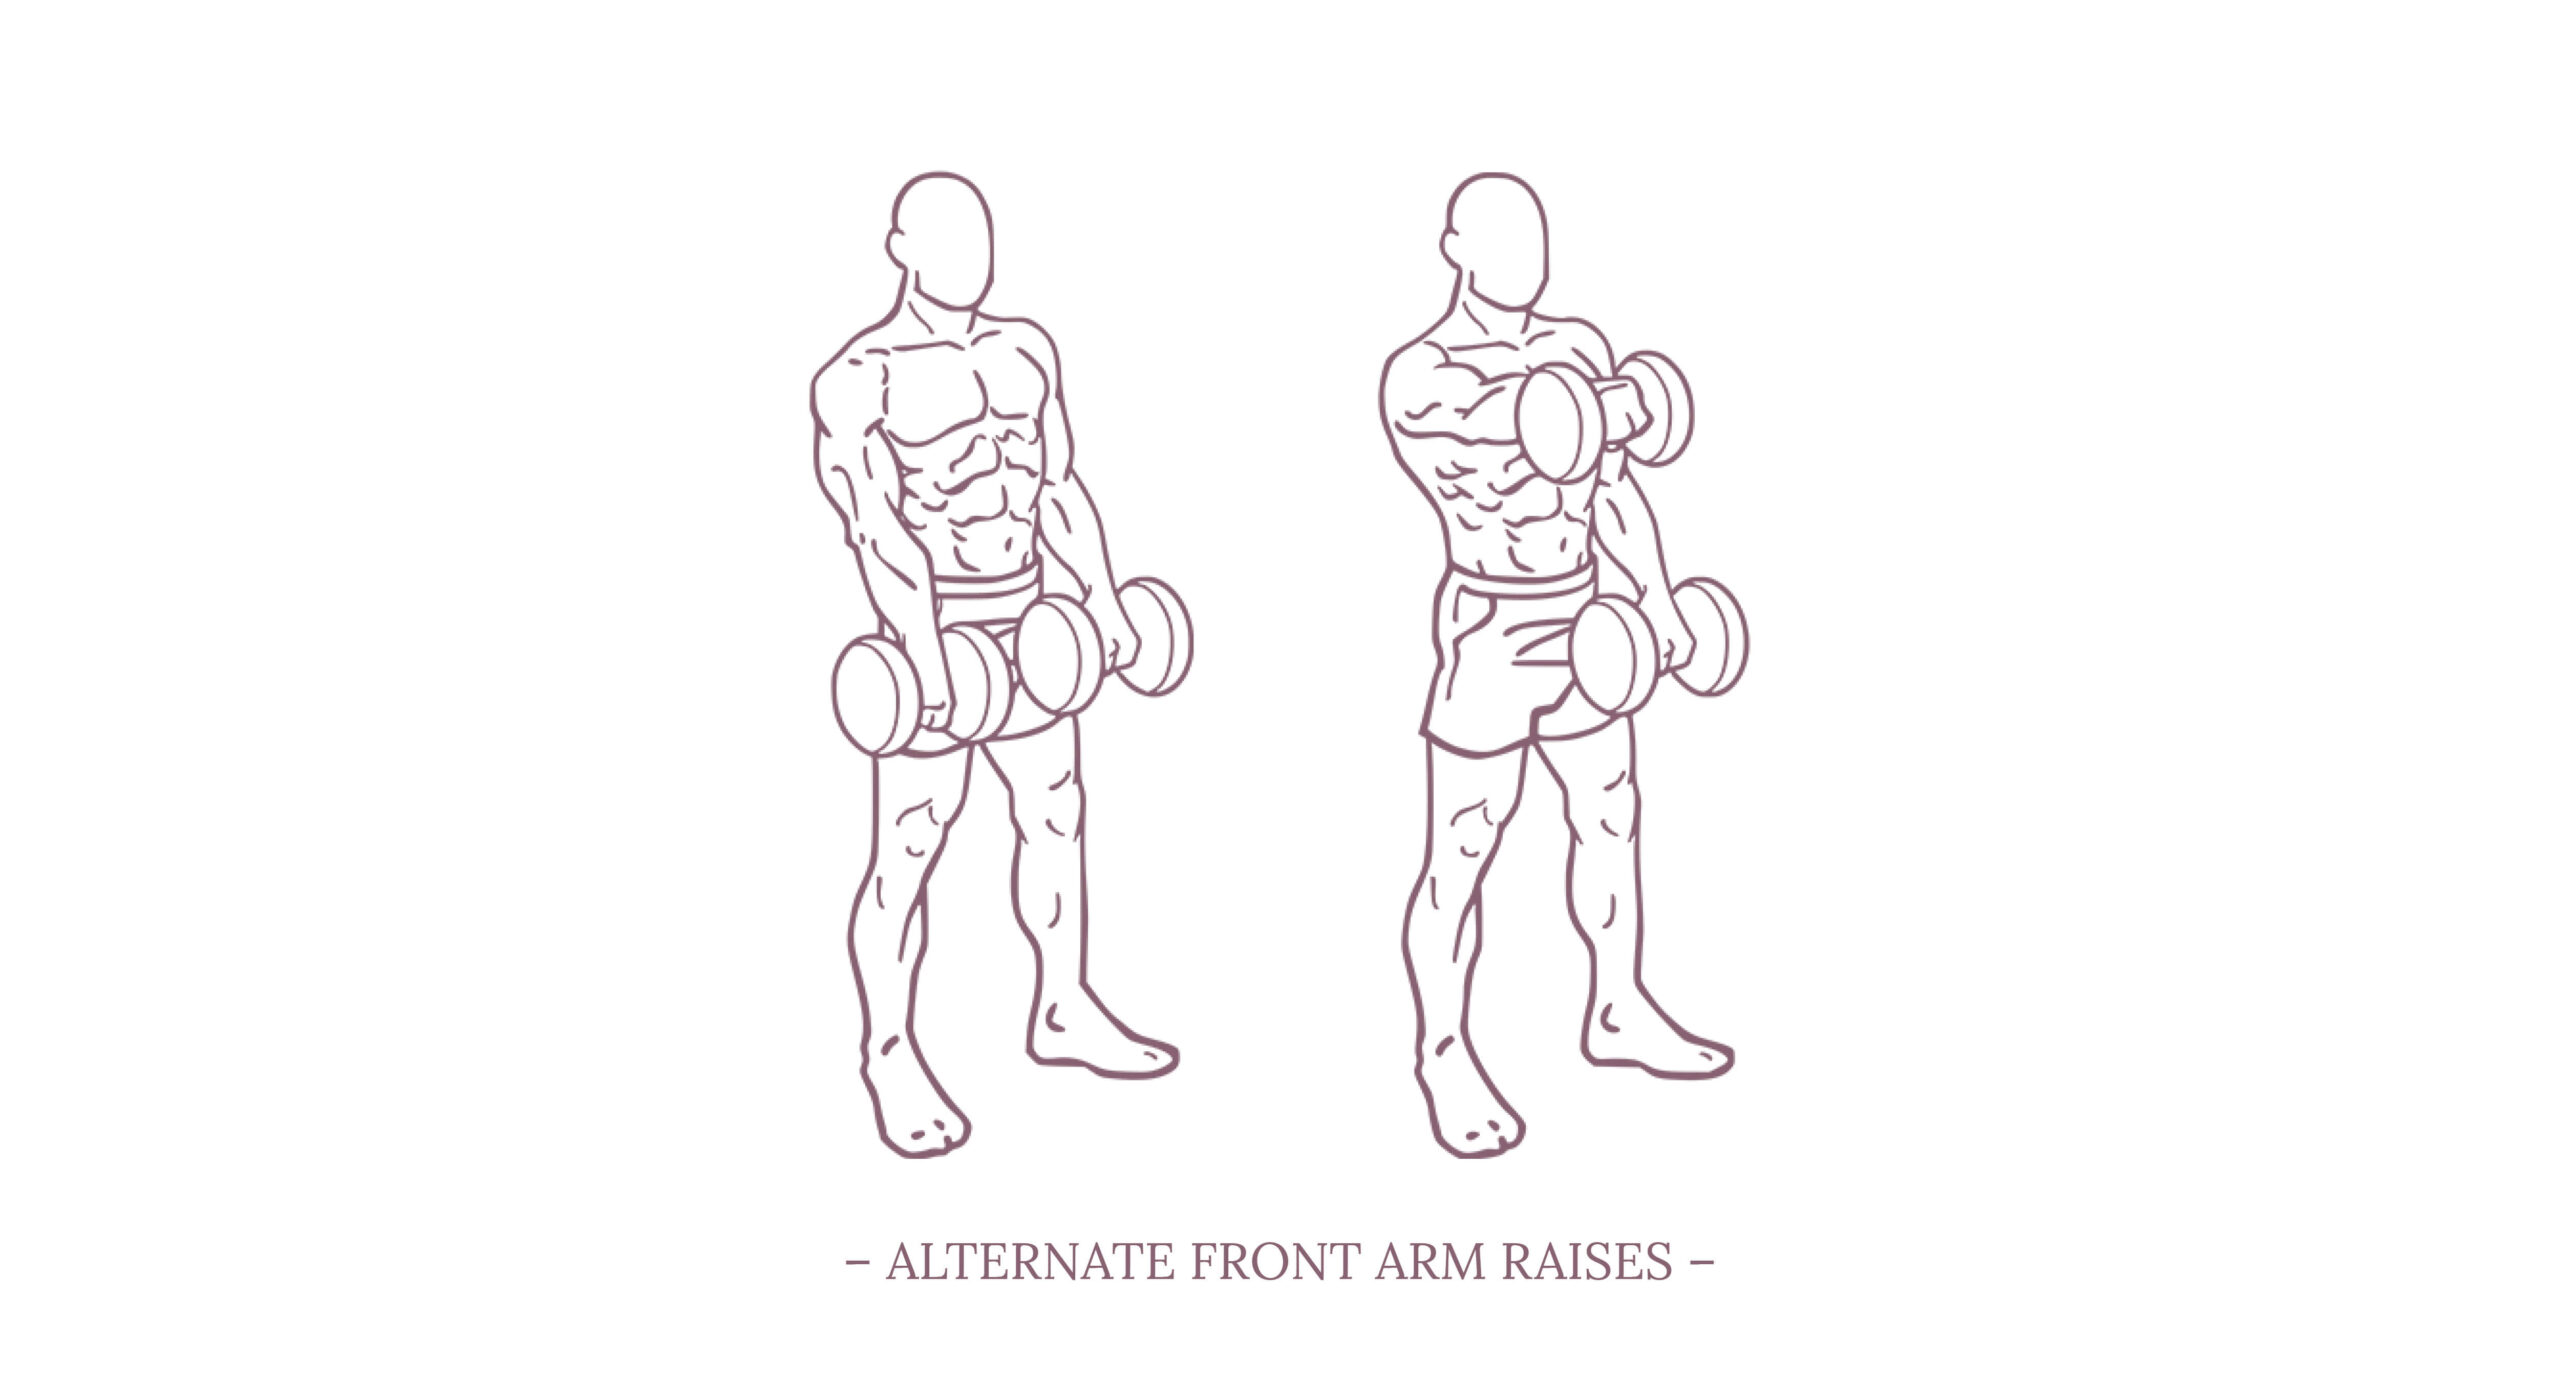 Alternate Front Arm Raises Illustration